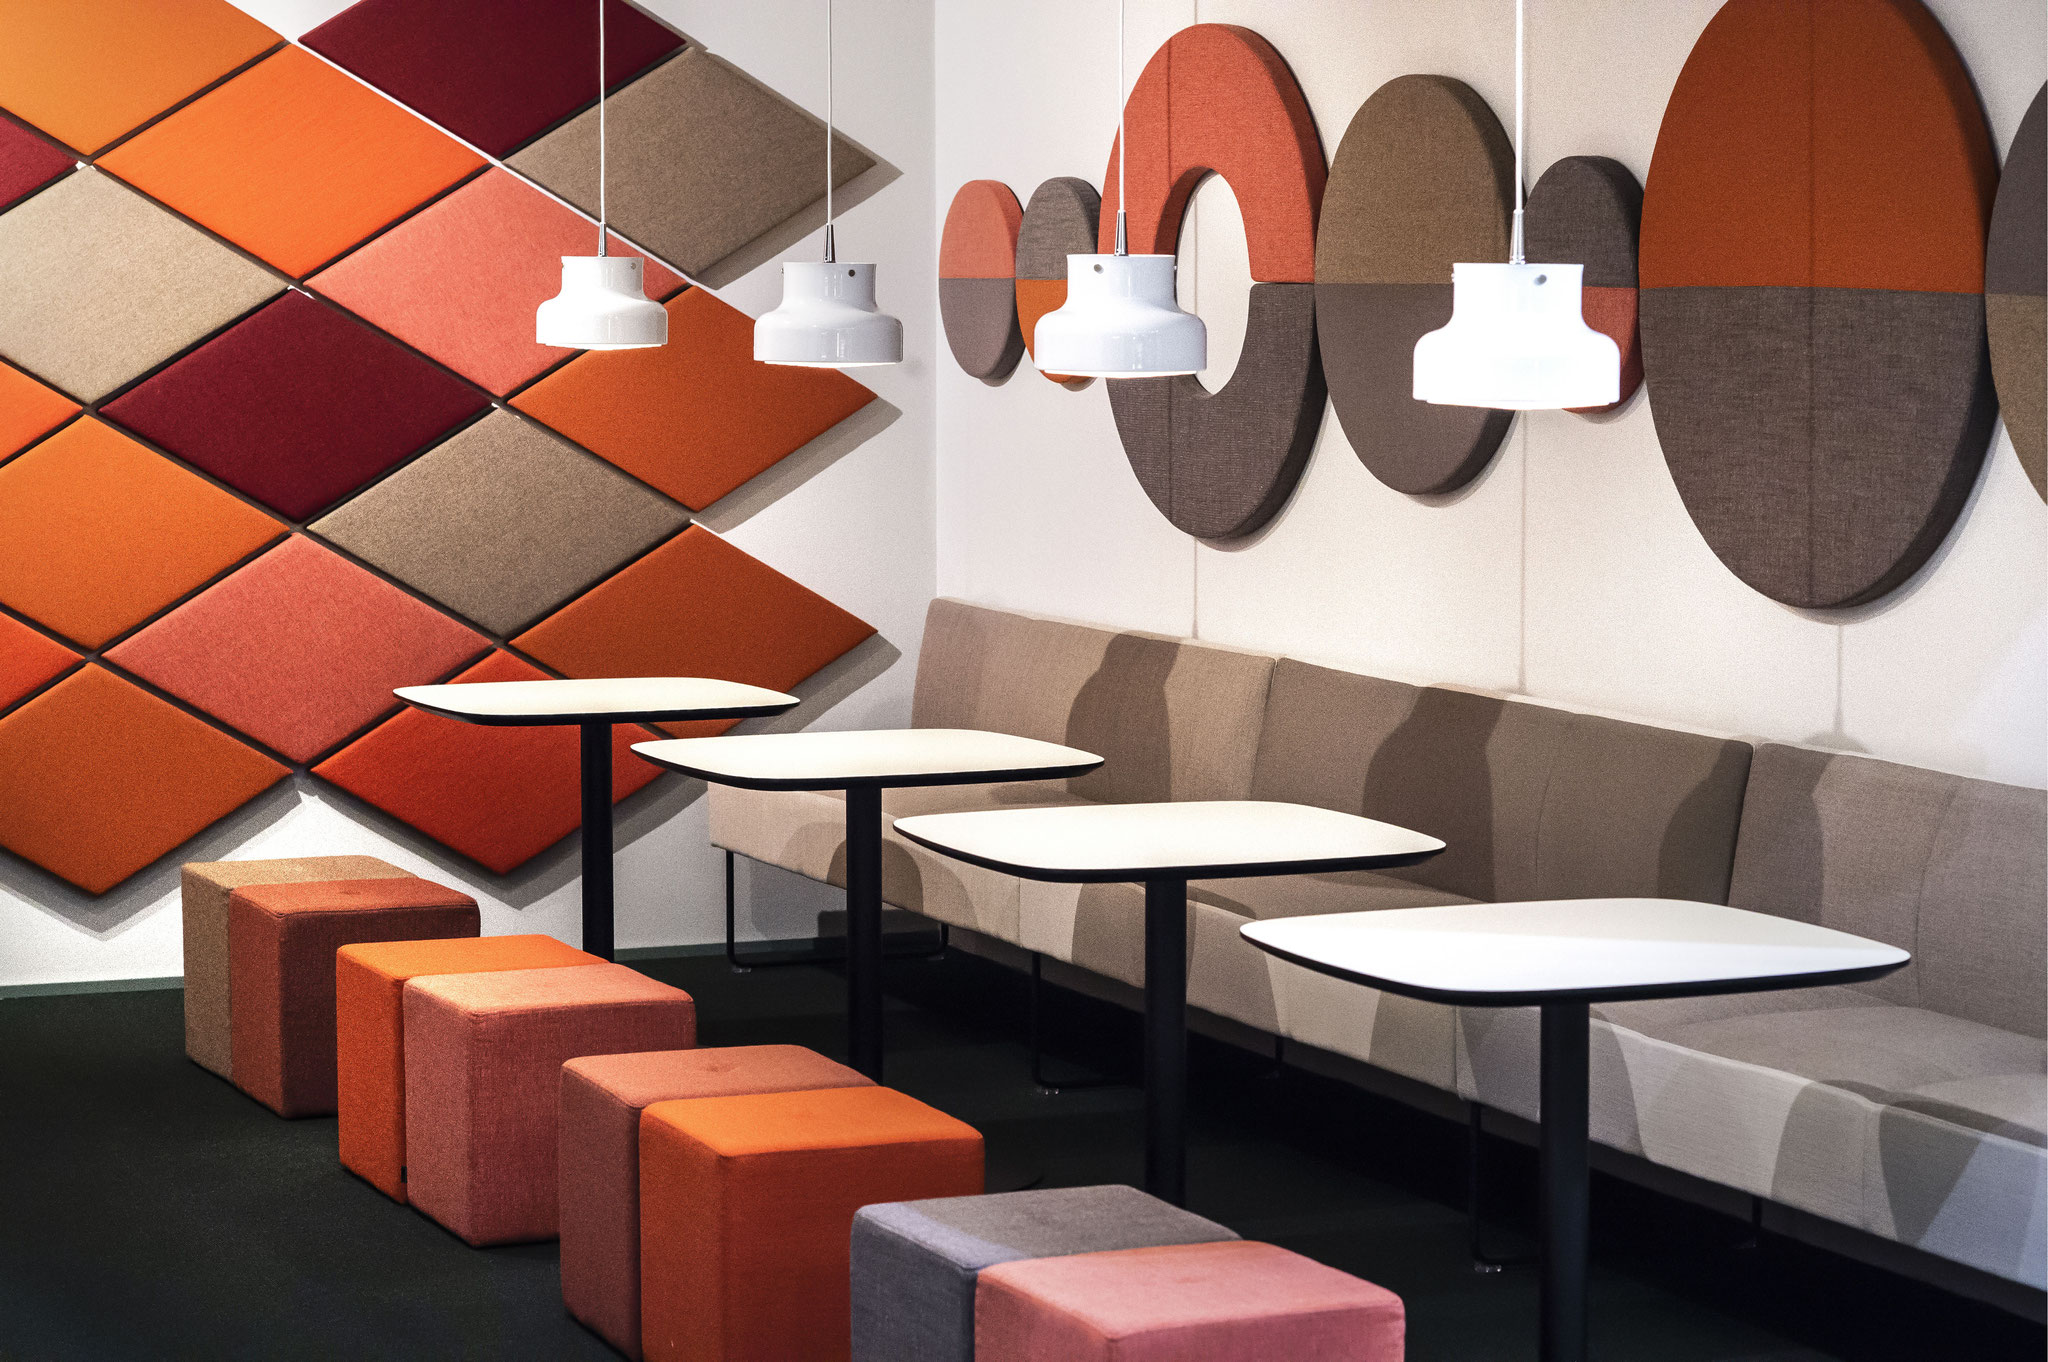 EFG Kite acoustic tiles in new shapes